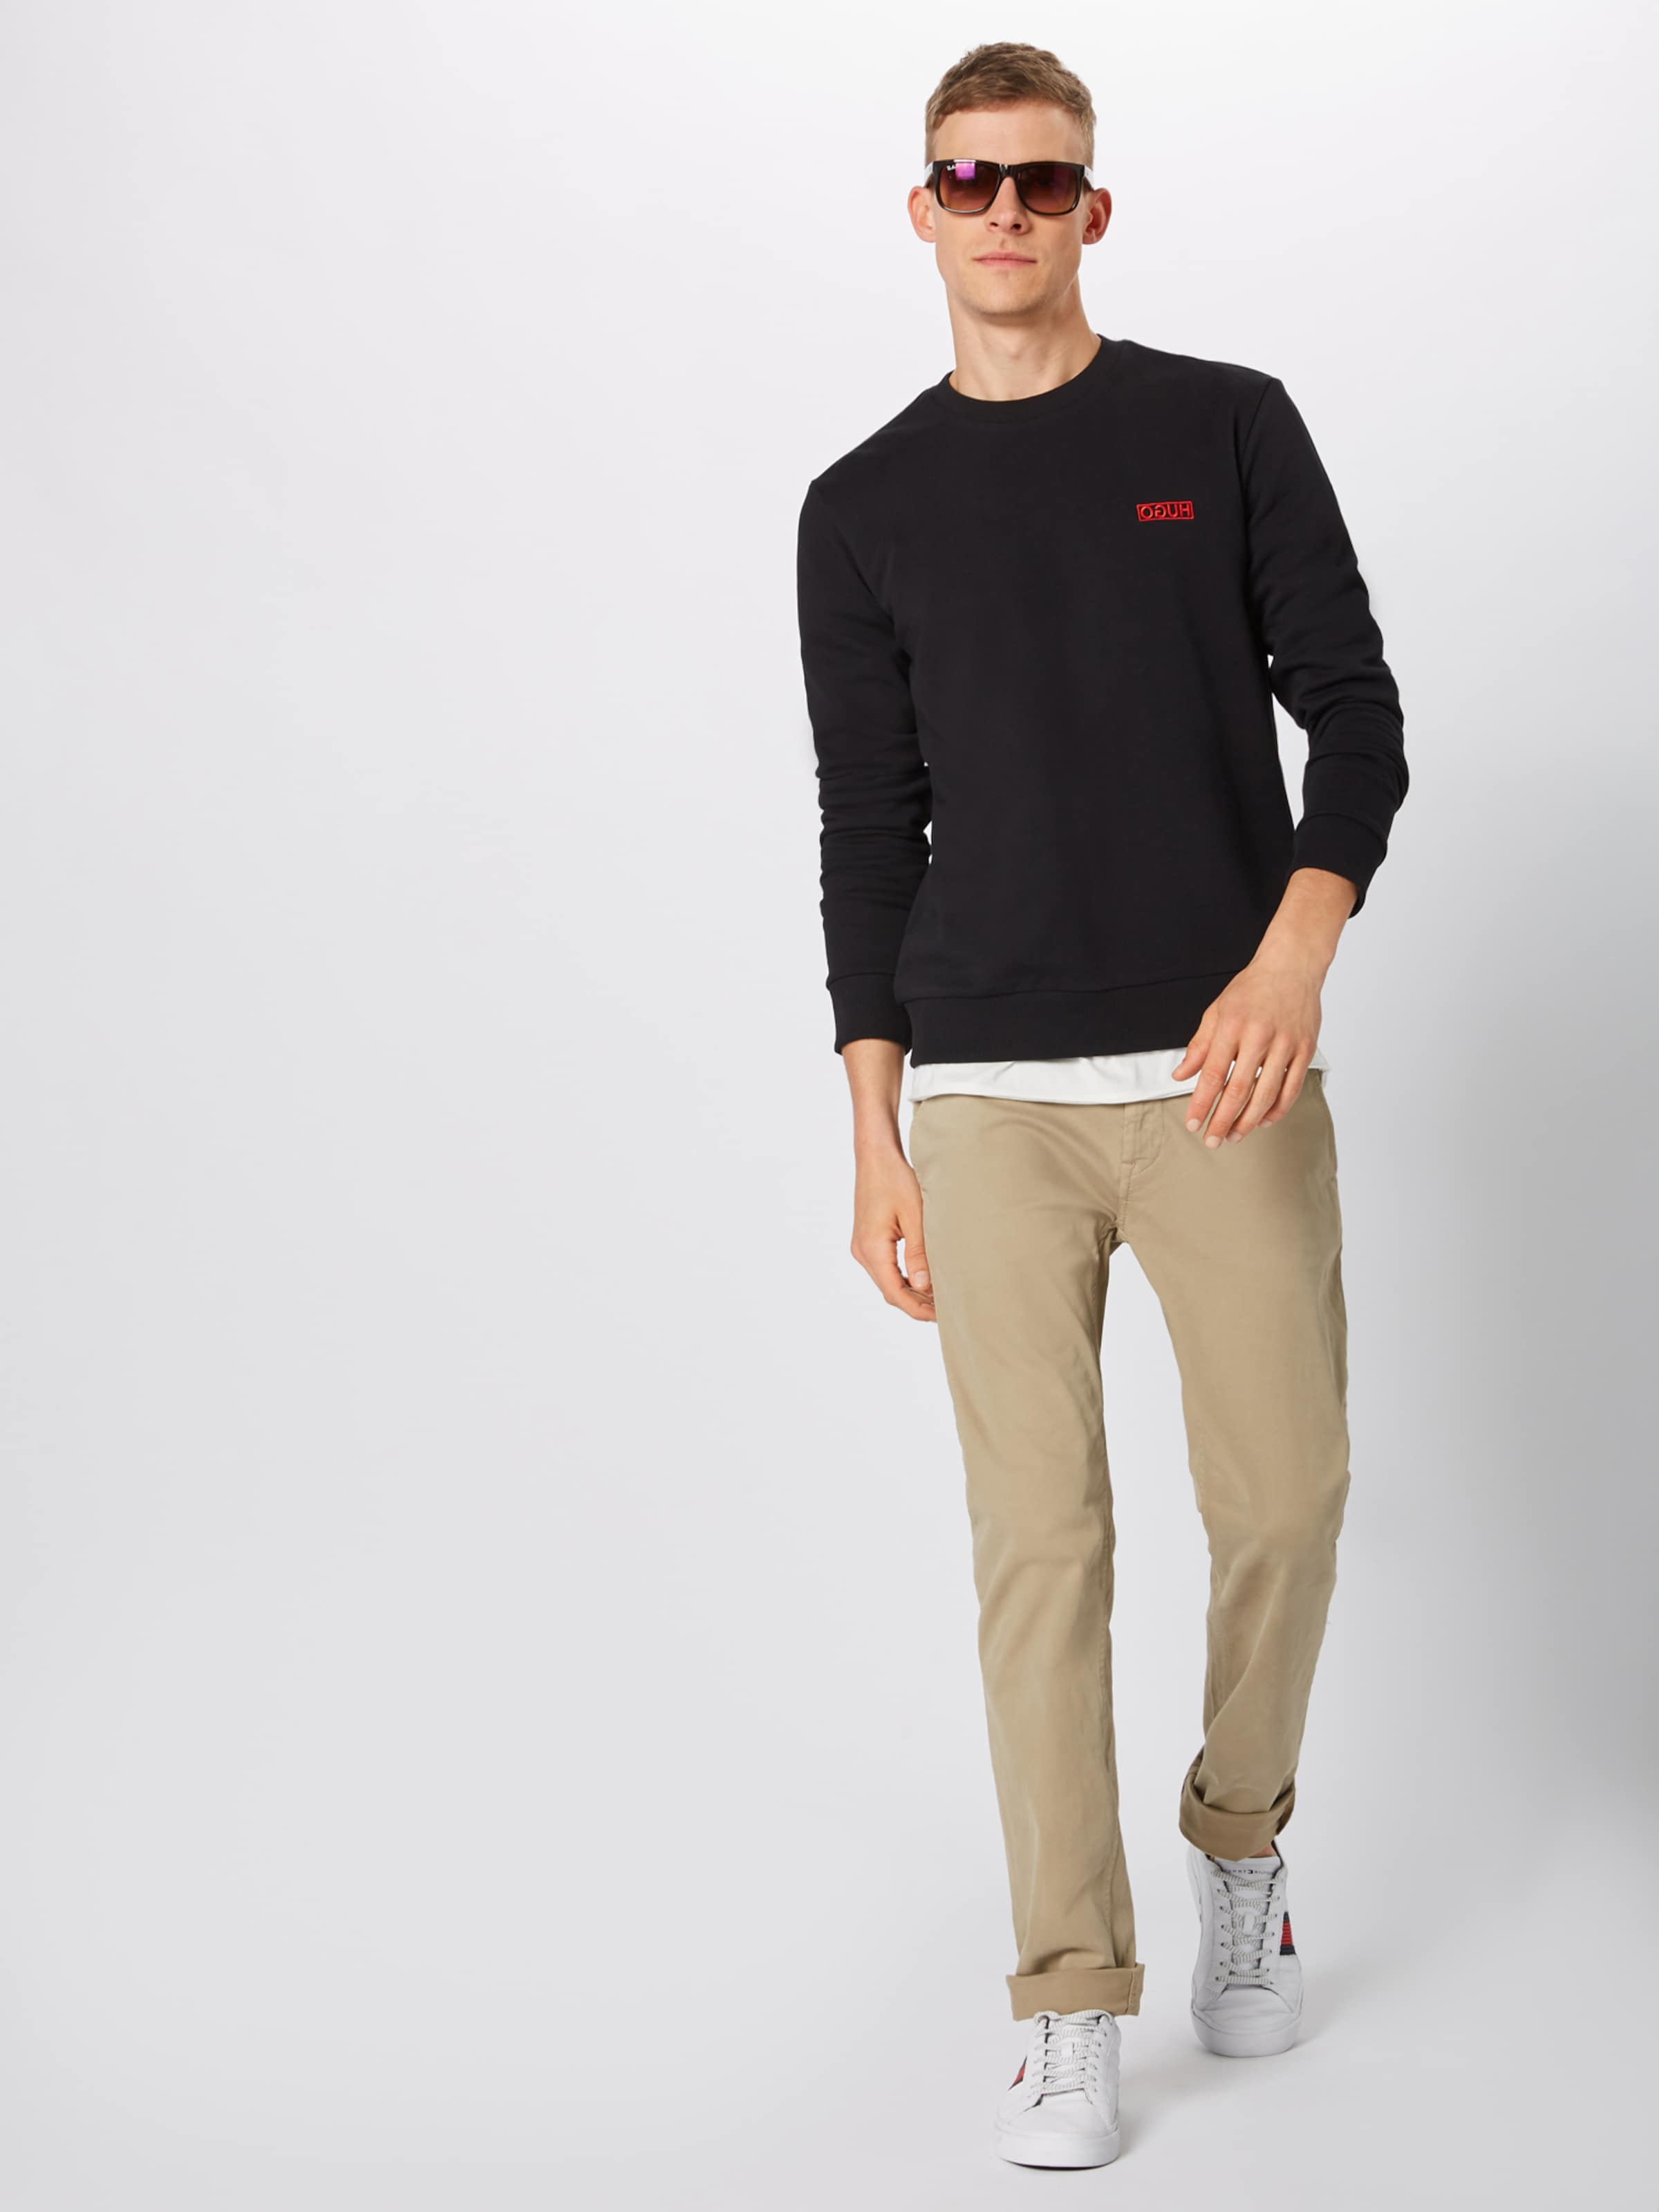 Hugo Blanc 'drick194' En Sweat shirt WHIED92